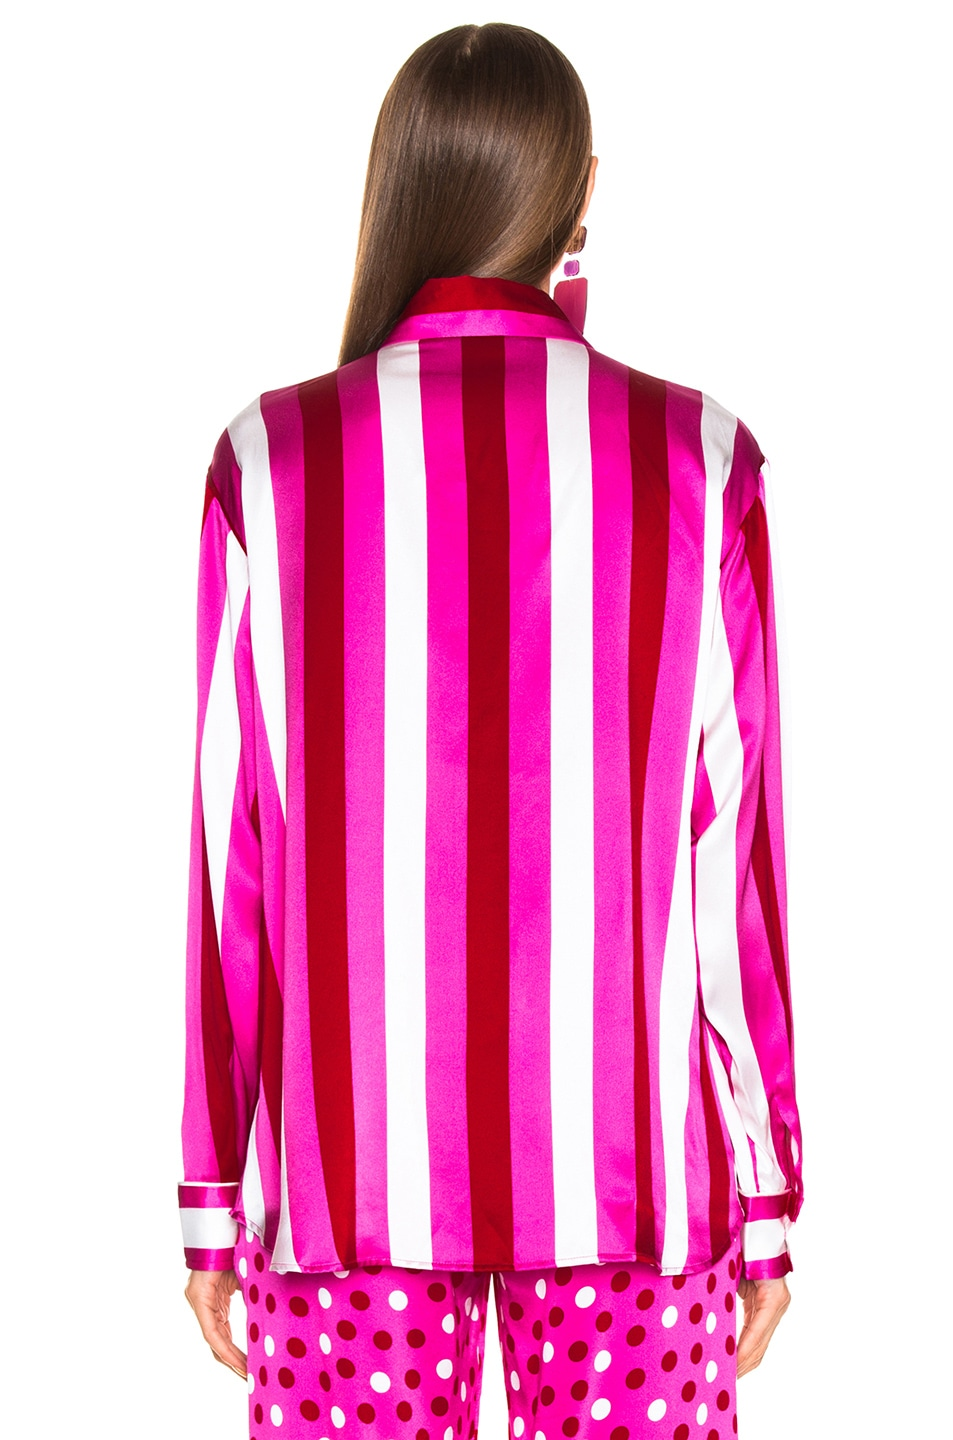 Image 3 of Maggie Marilyn Hand In My Hand Top in Pink, White & Red Stripe